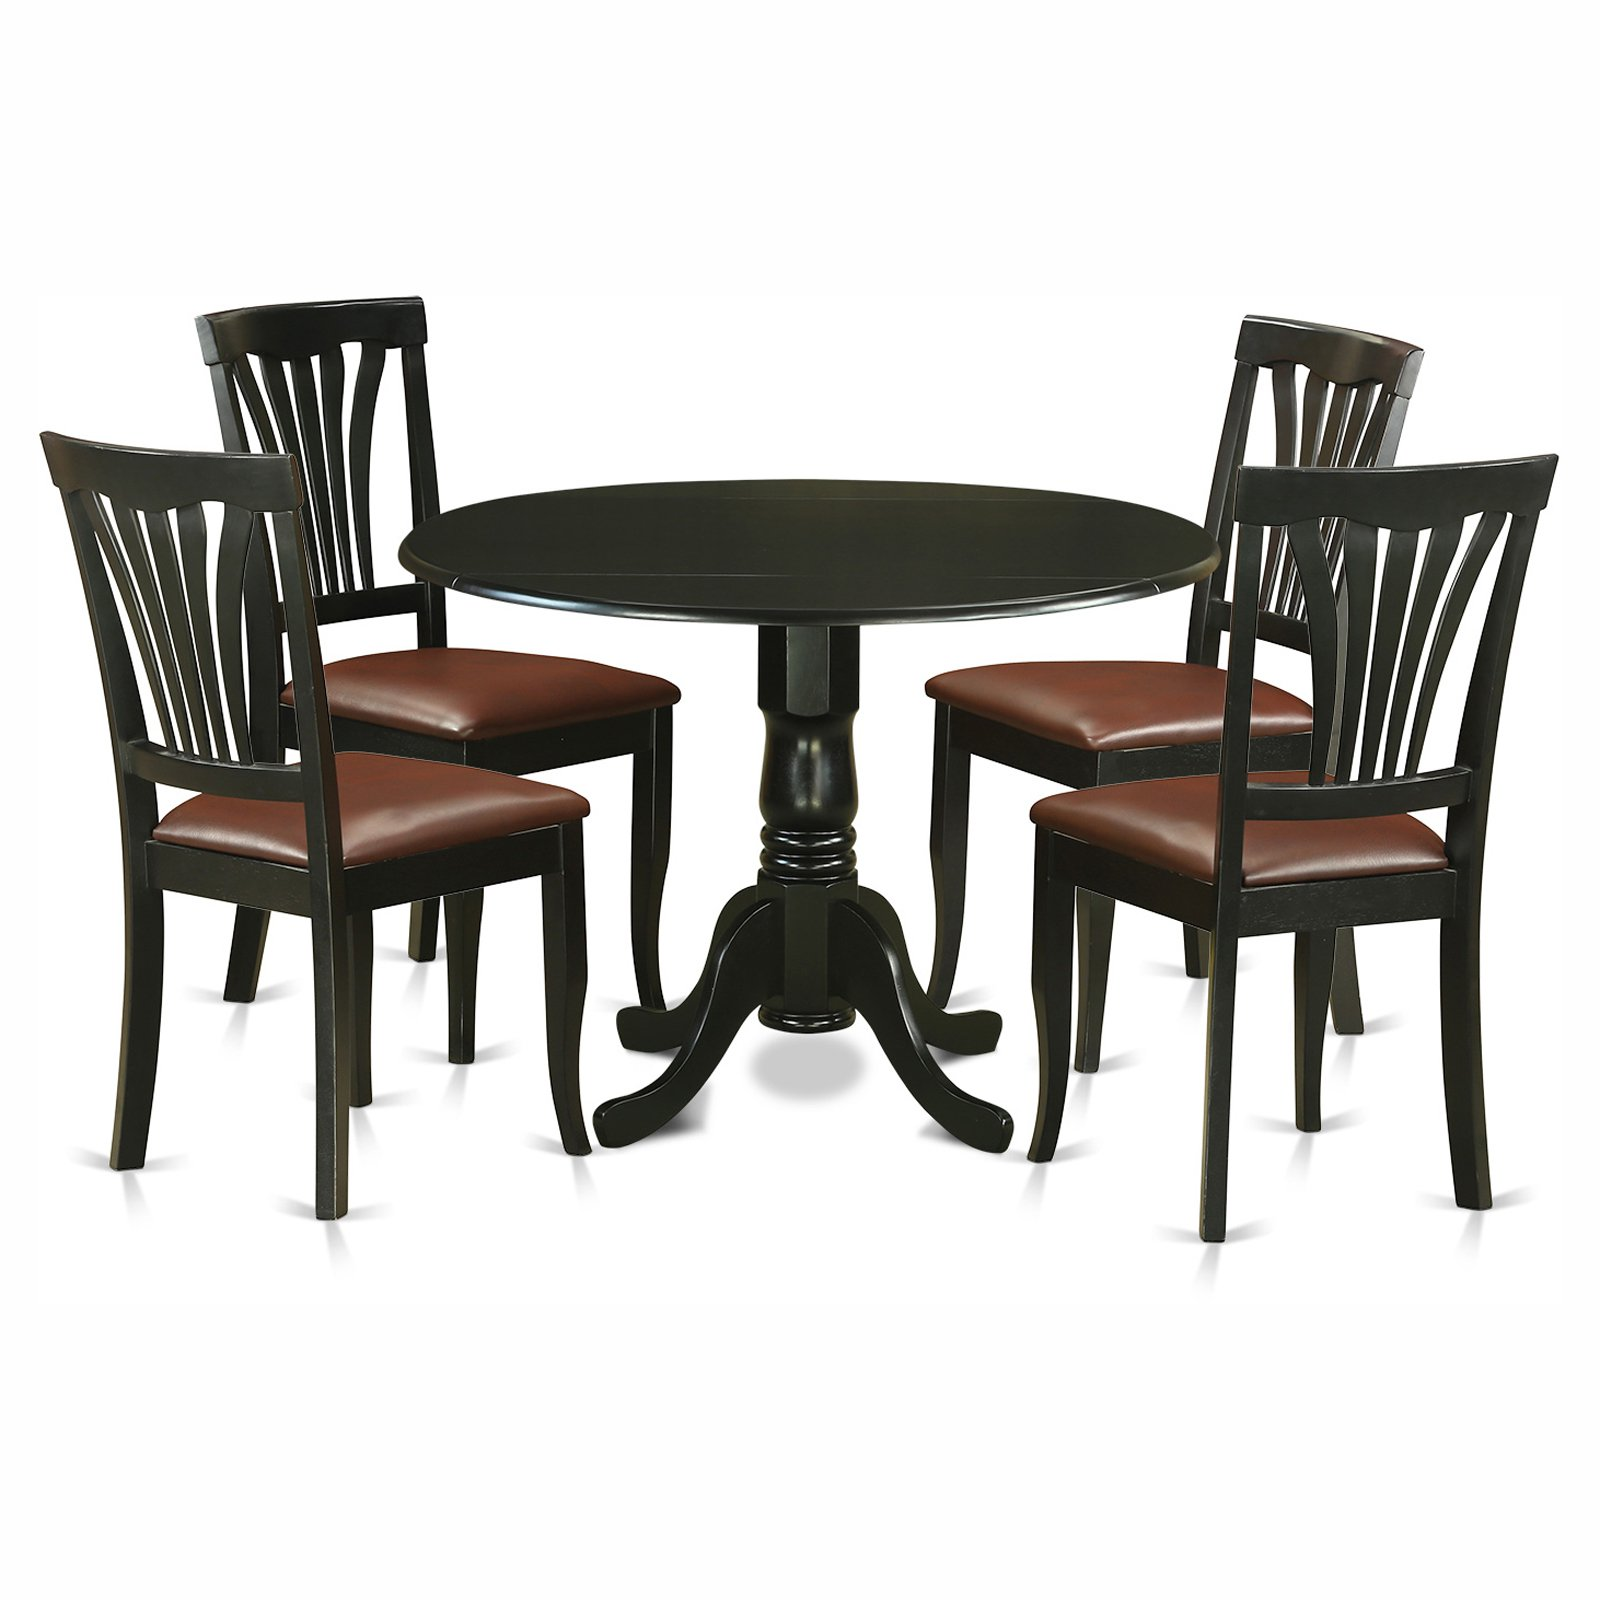 East West Furniture Dublin 5 Piece Round Dining Table Set